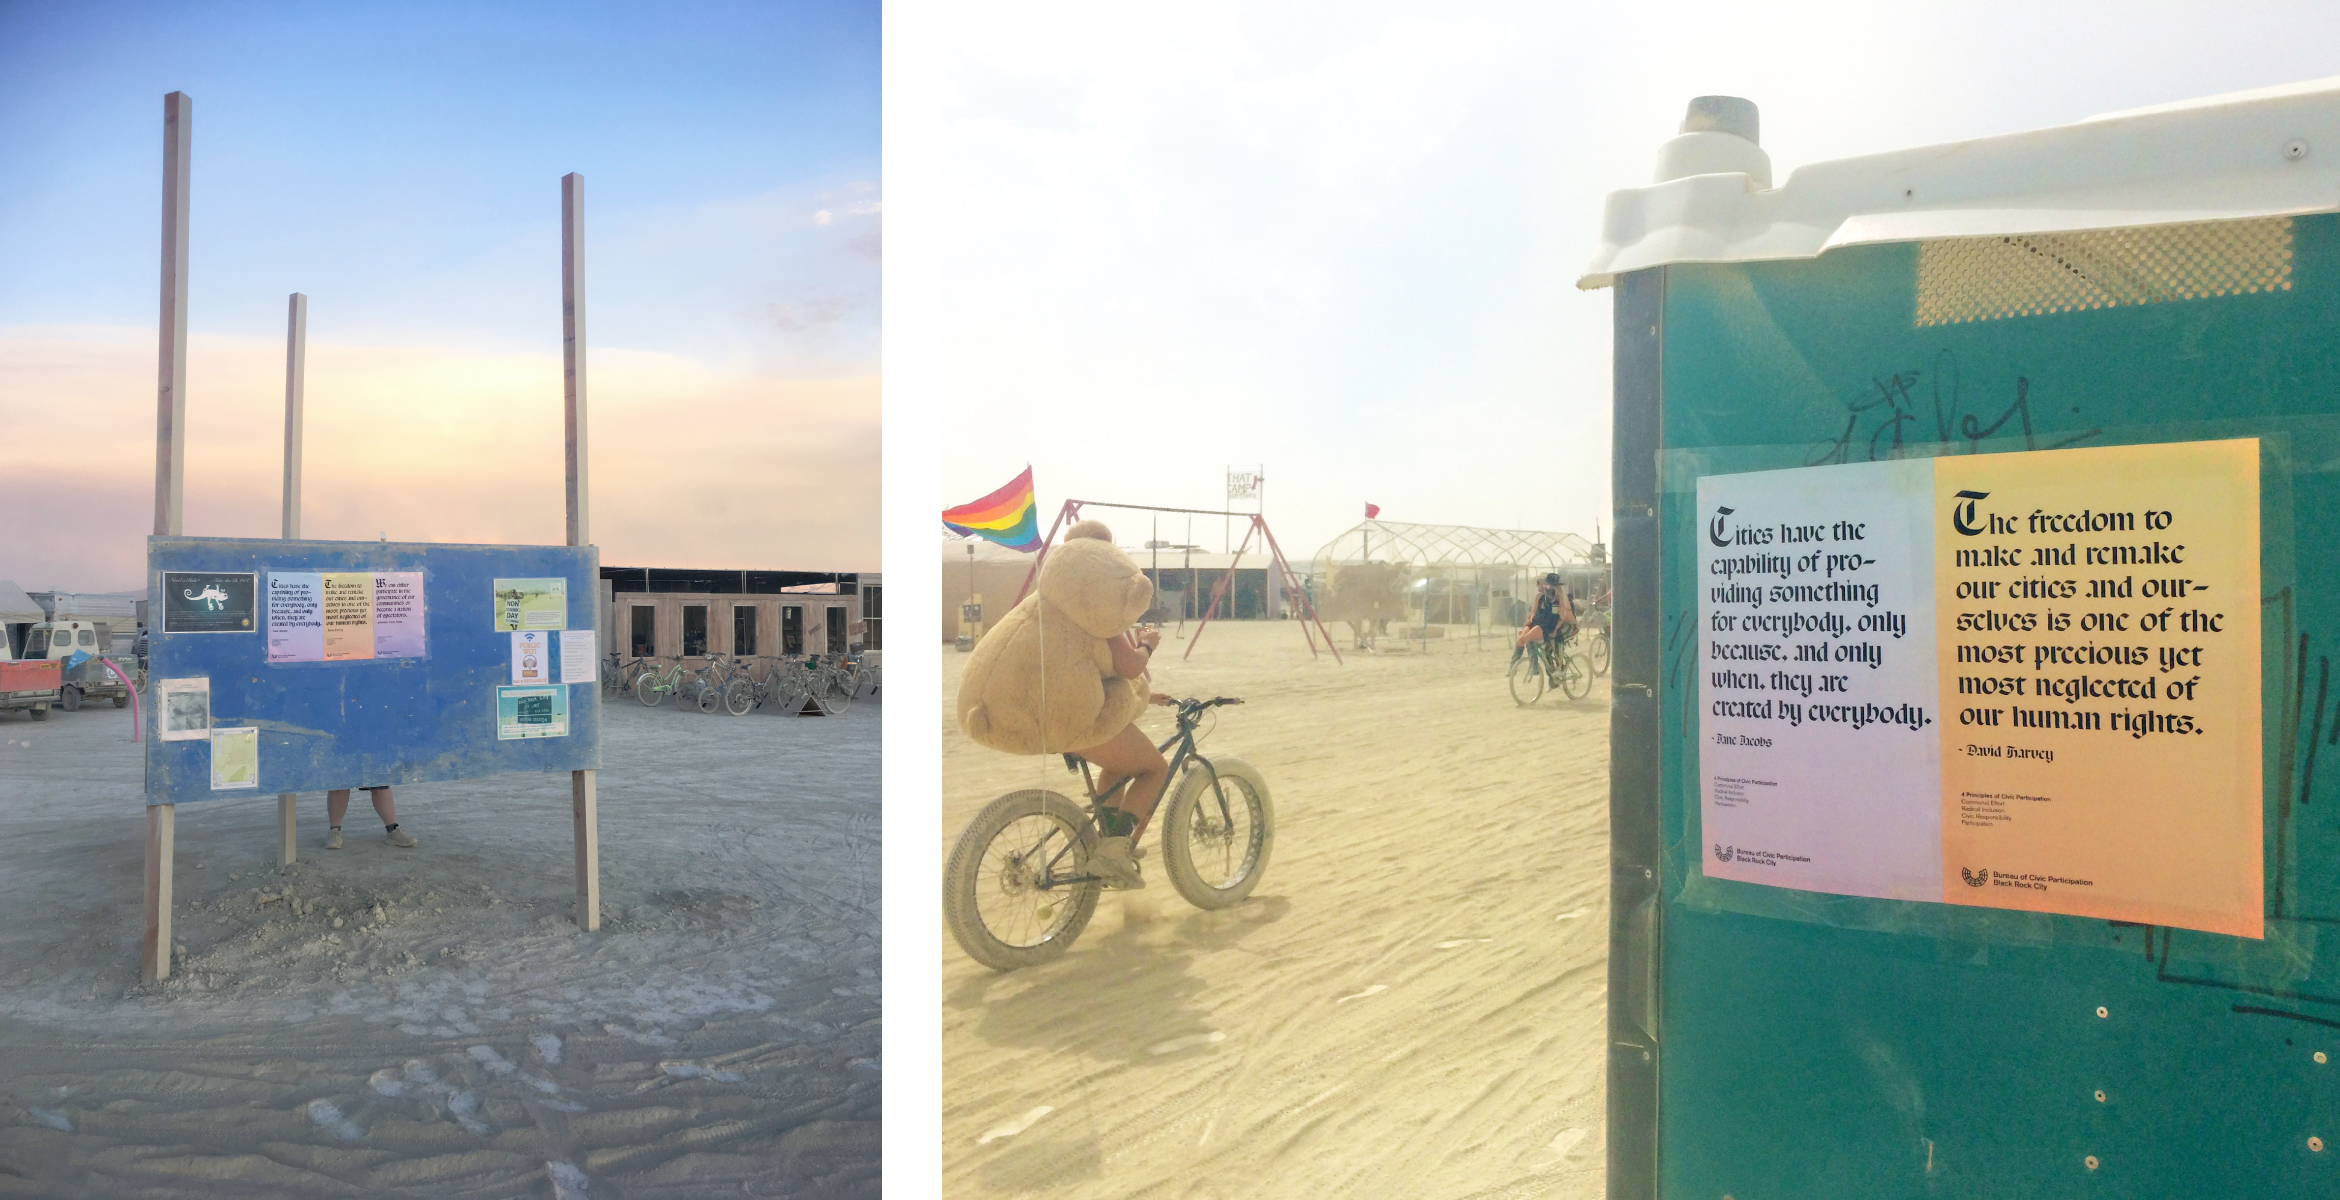 Posters made for the Burning Man festival are featured in various locations around Black Rock City.